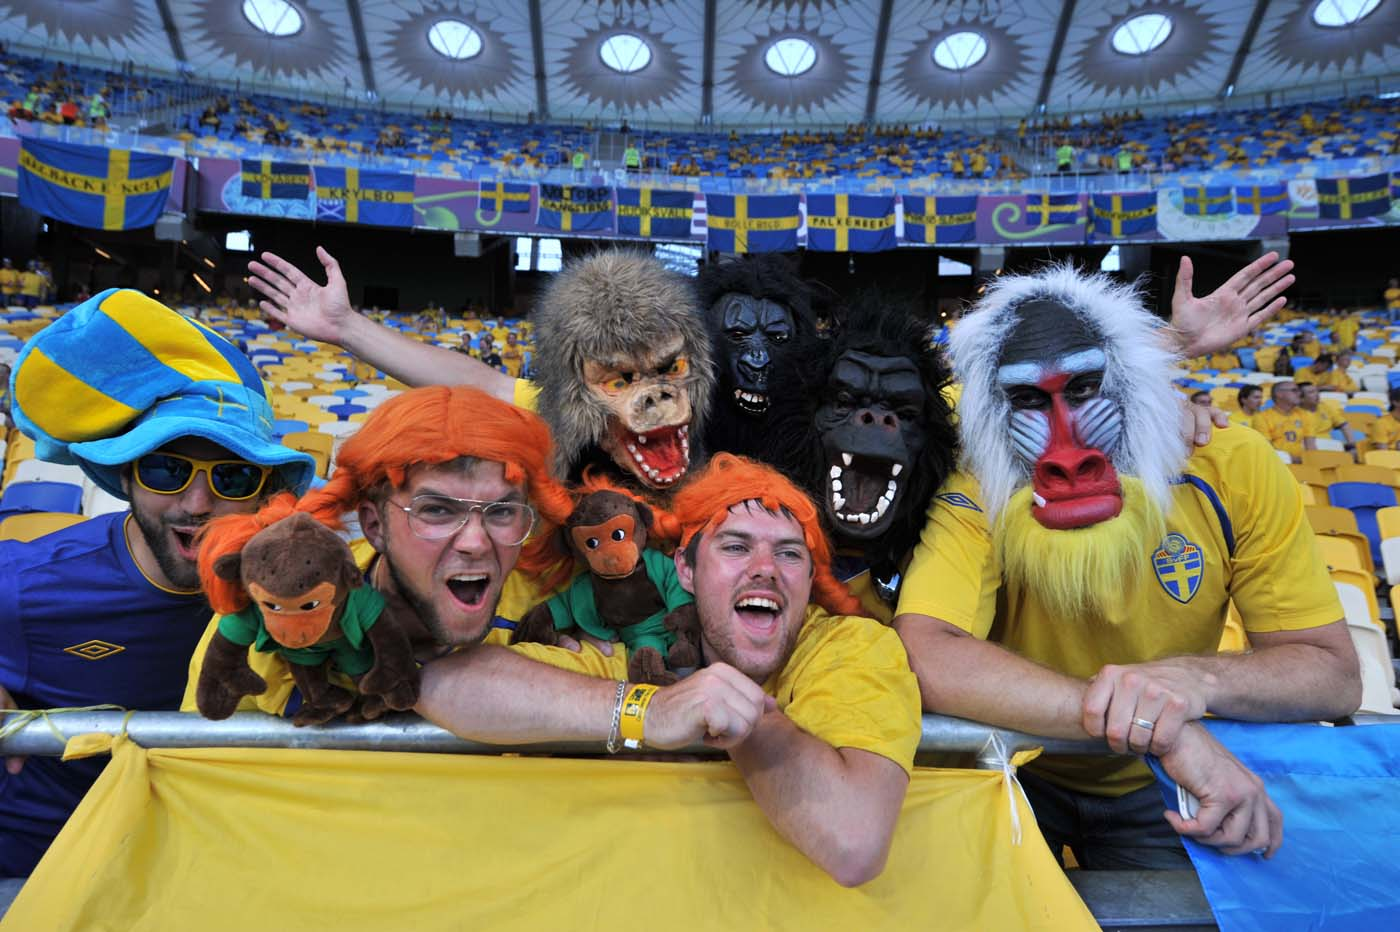 Swedish fans pose before the Euro 2012 football championships match Sweden vs France on June 19, 2012 at the Olympic Stadium in Kiev. (Genya Savilovgenya/AFP/Getty Images)